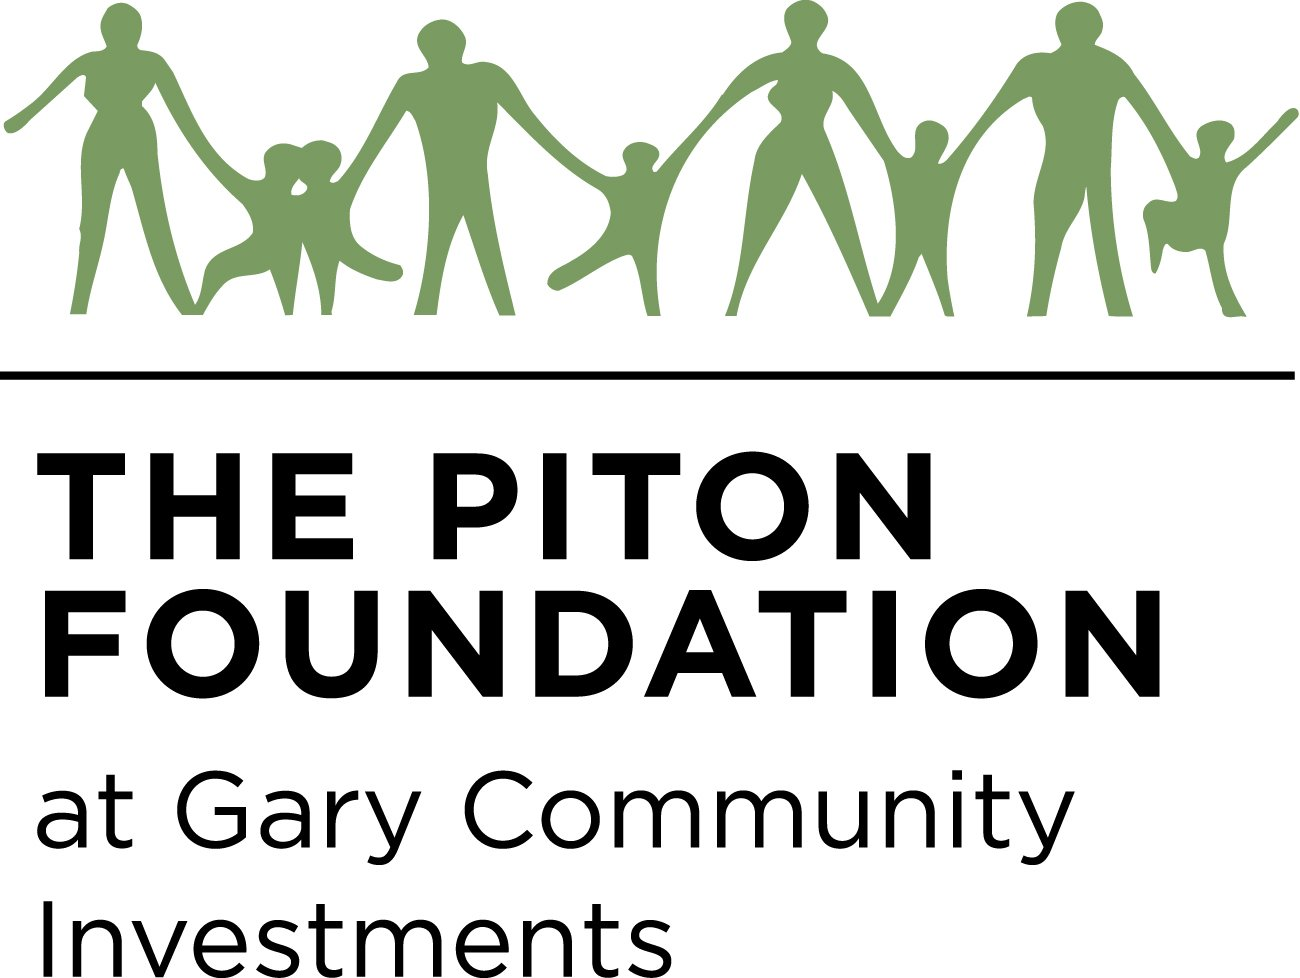 Piton Foundation